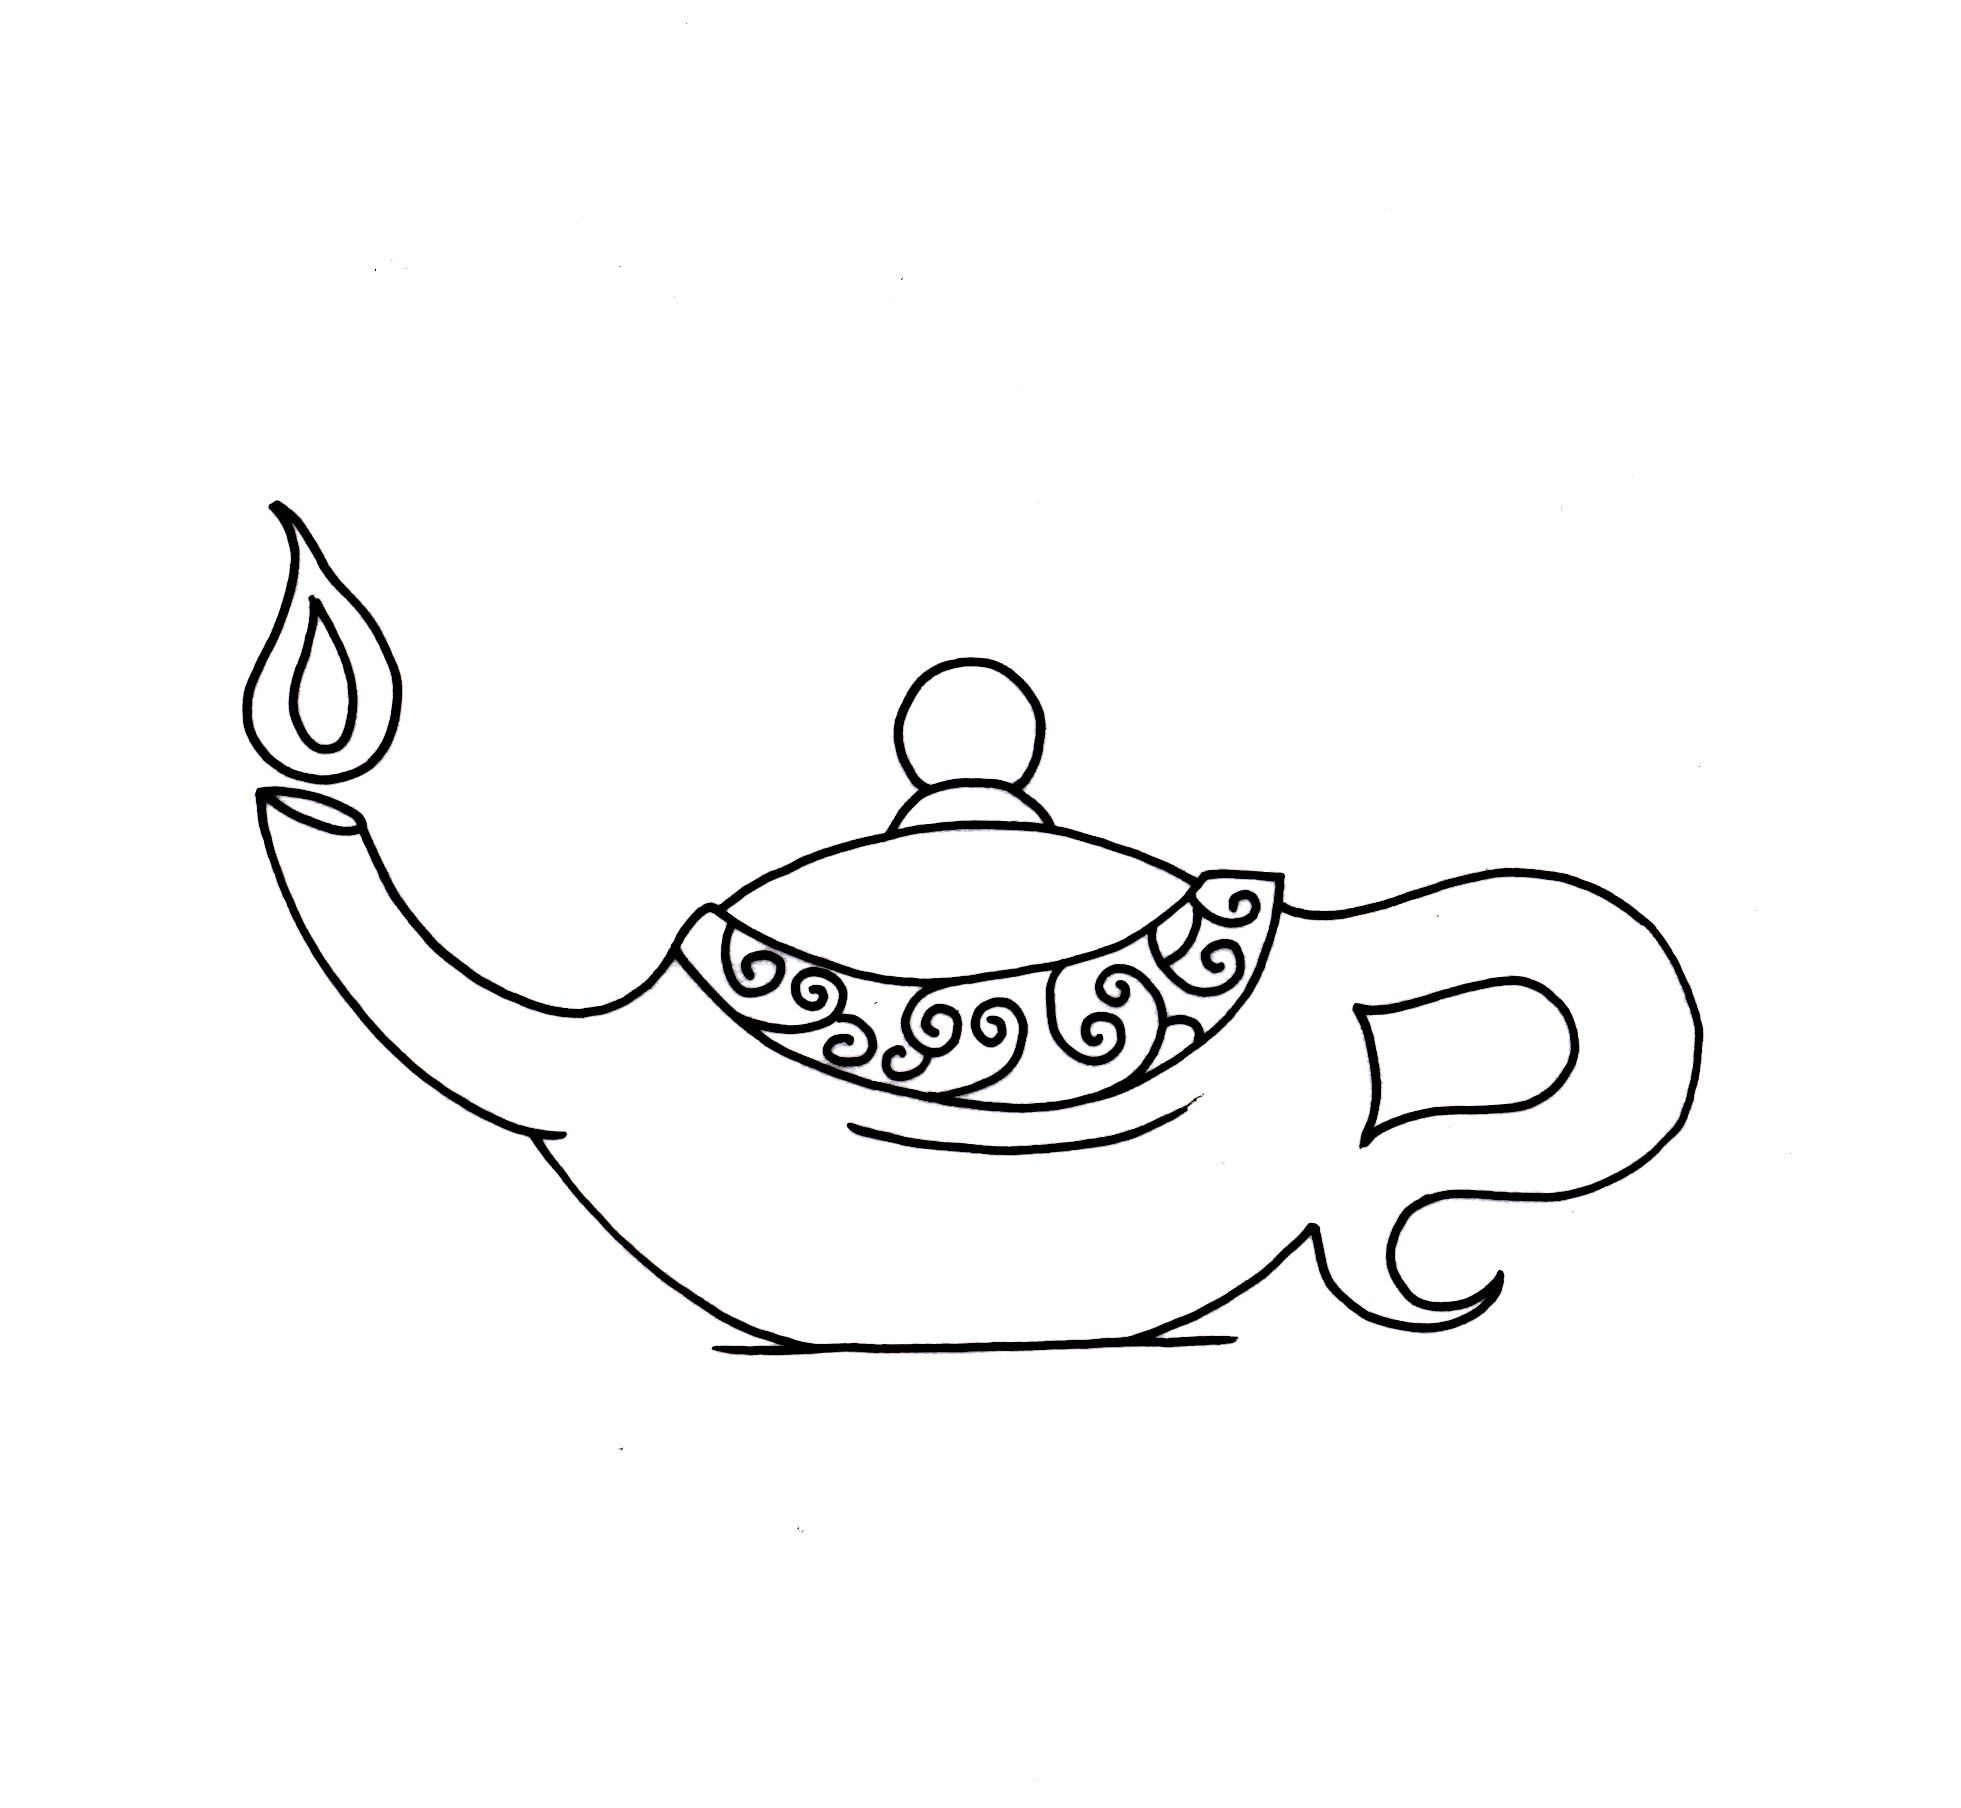 Oil Lamp Coloring Page Coloring Pages Oil Lamps Color